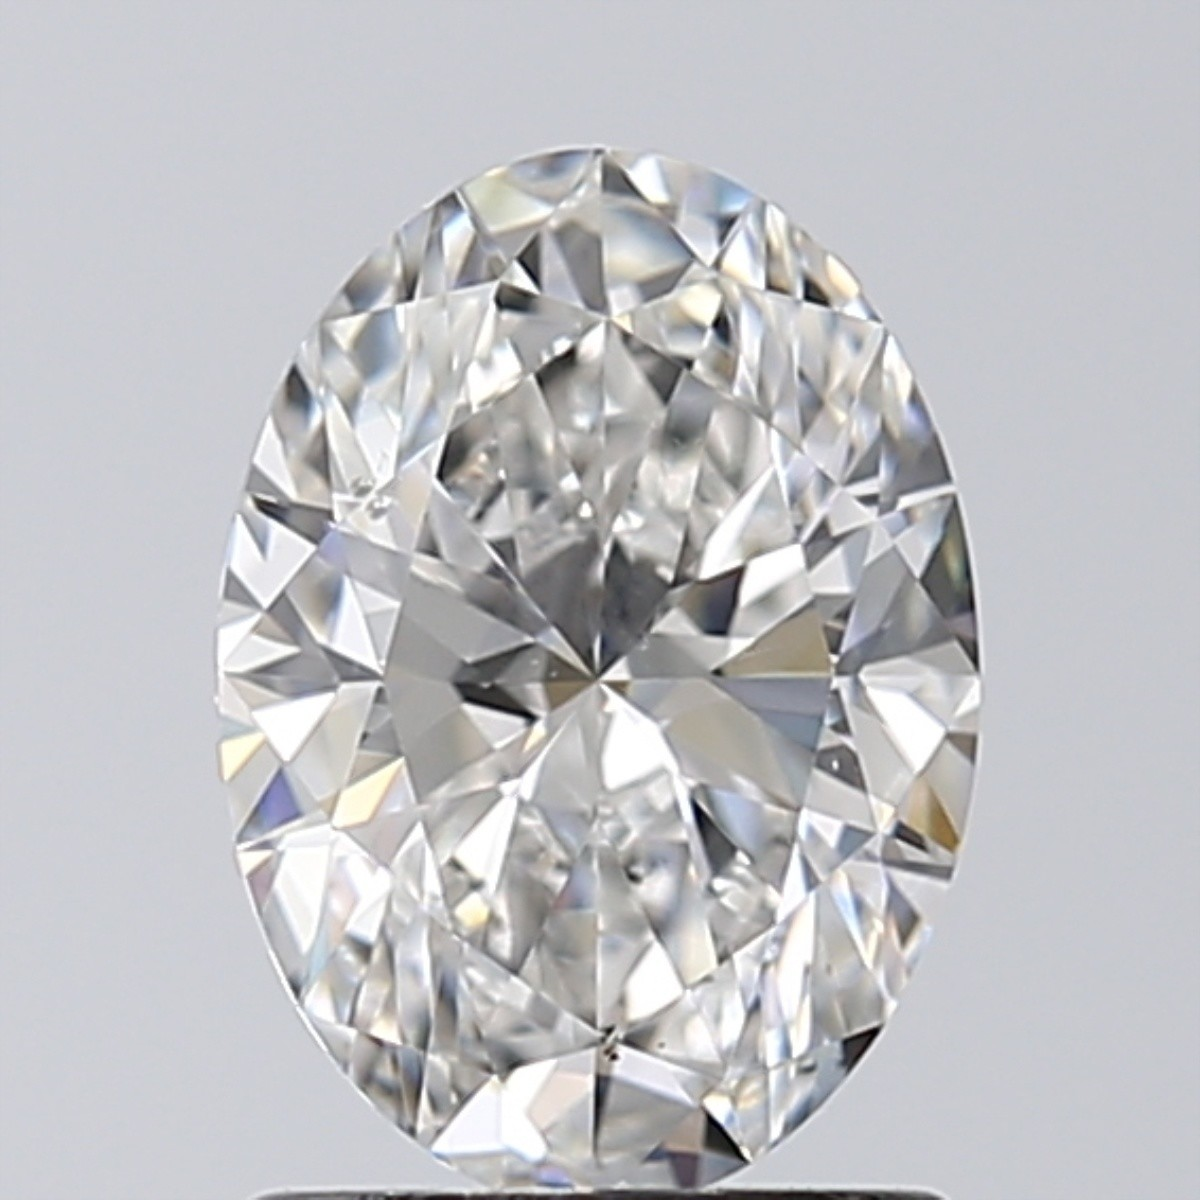 1.28 Carat Oval Diamond (G/SI1)